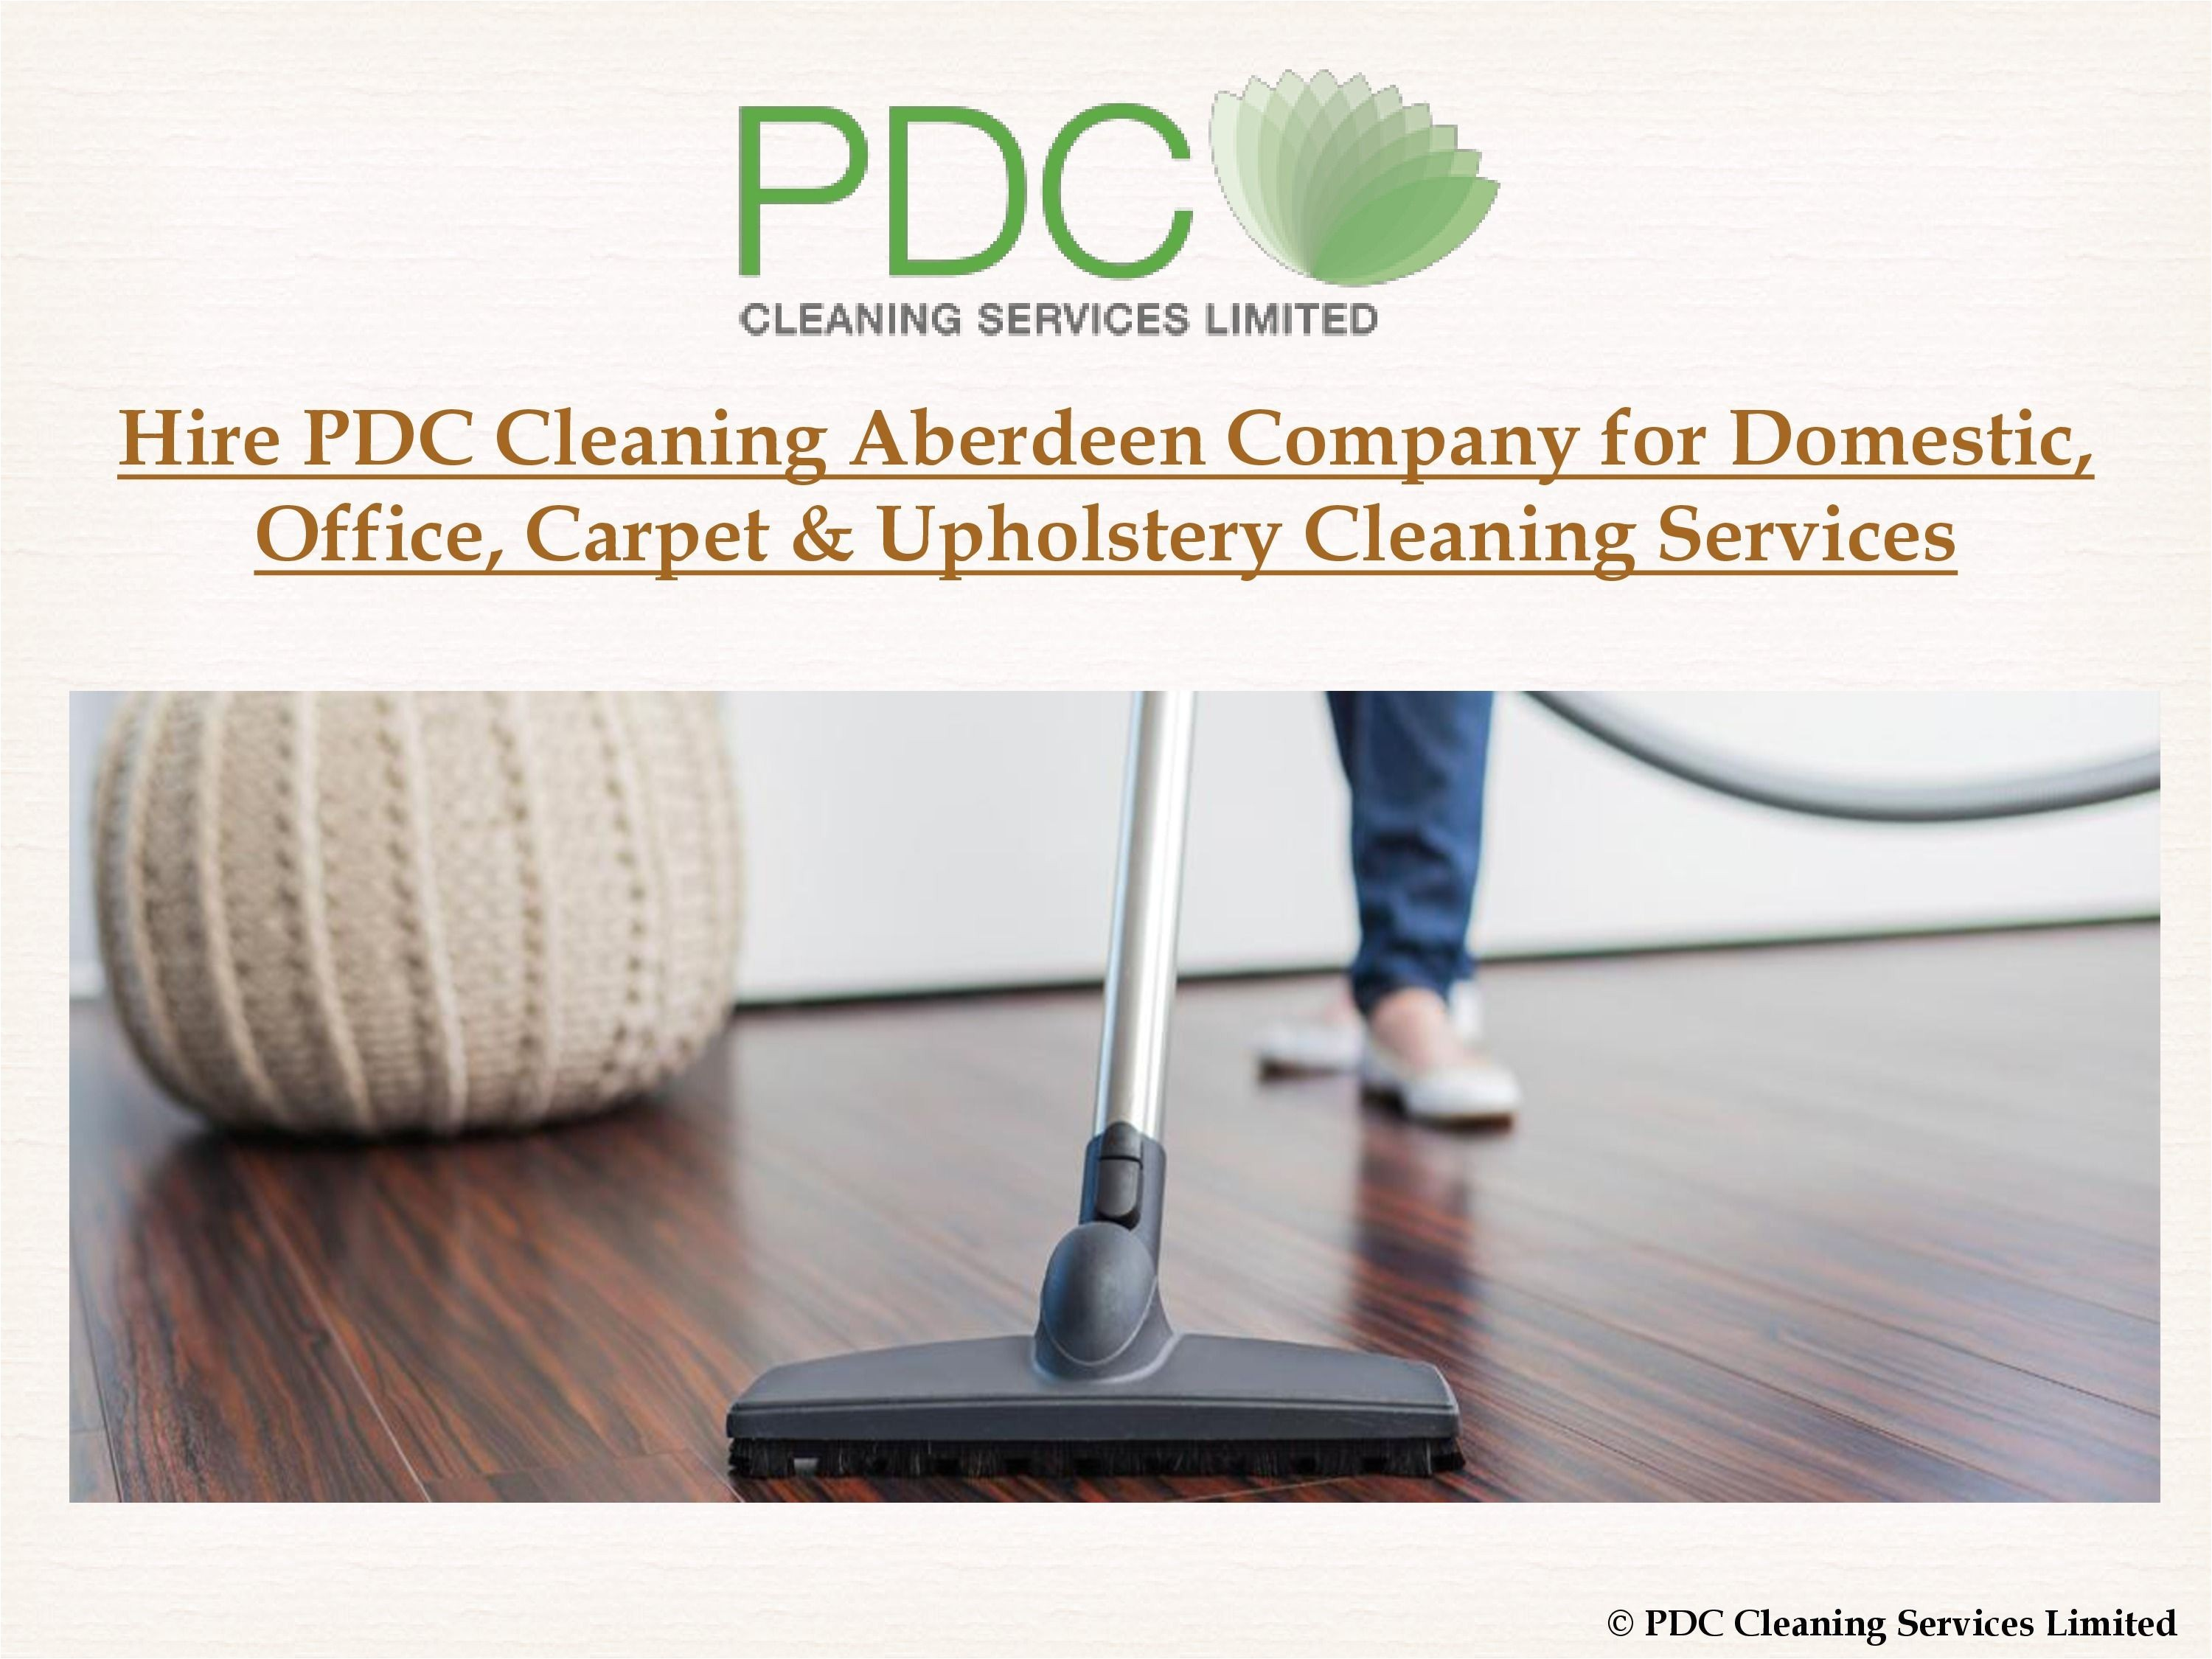 home carpet cleaner new best professional home cleaning services offers carpet cleaning of home carpet cleaner